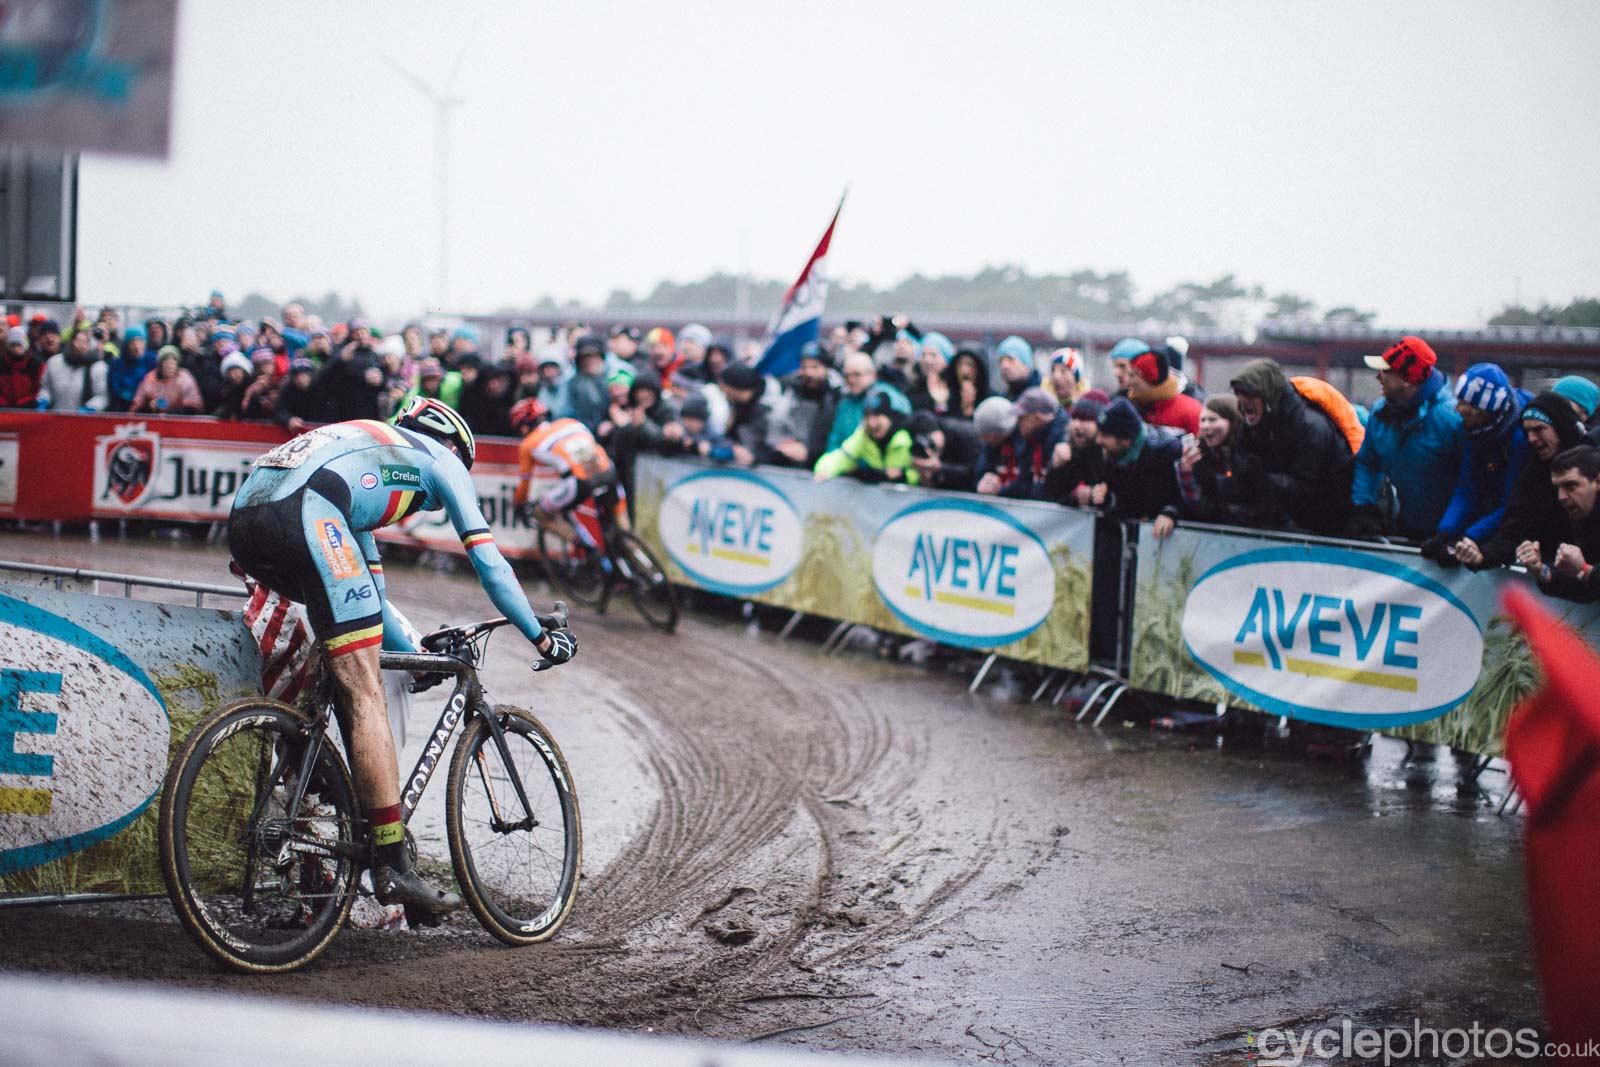 2016-cyclephotos-cyclocross-world-championships-zolder-155506-wout-van-aert